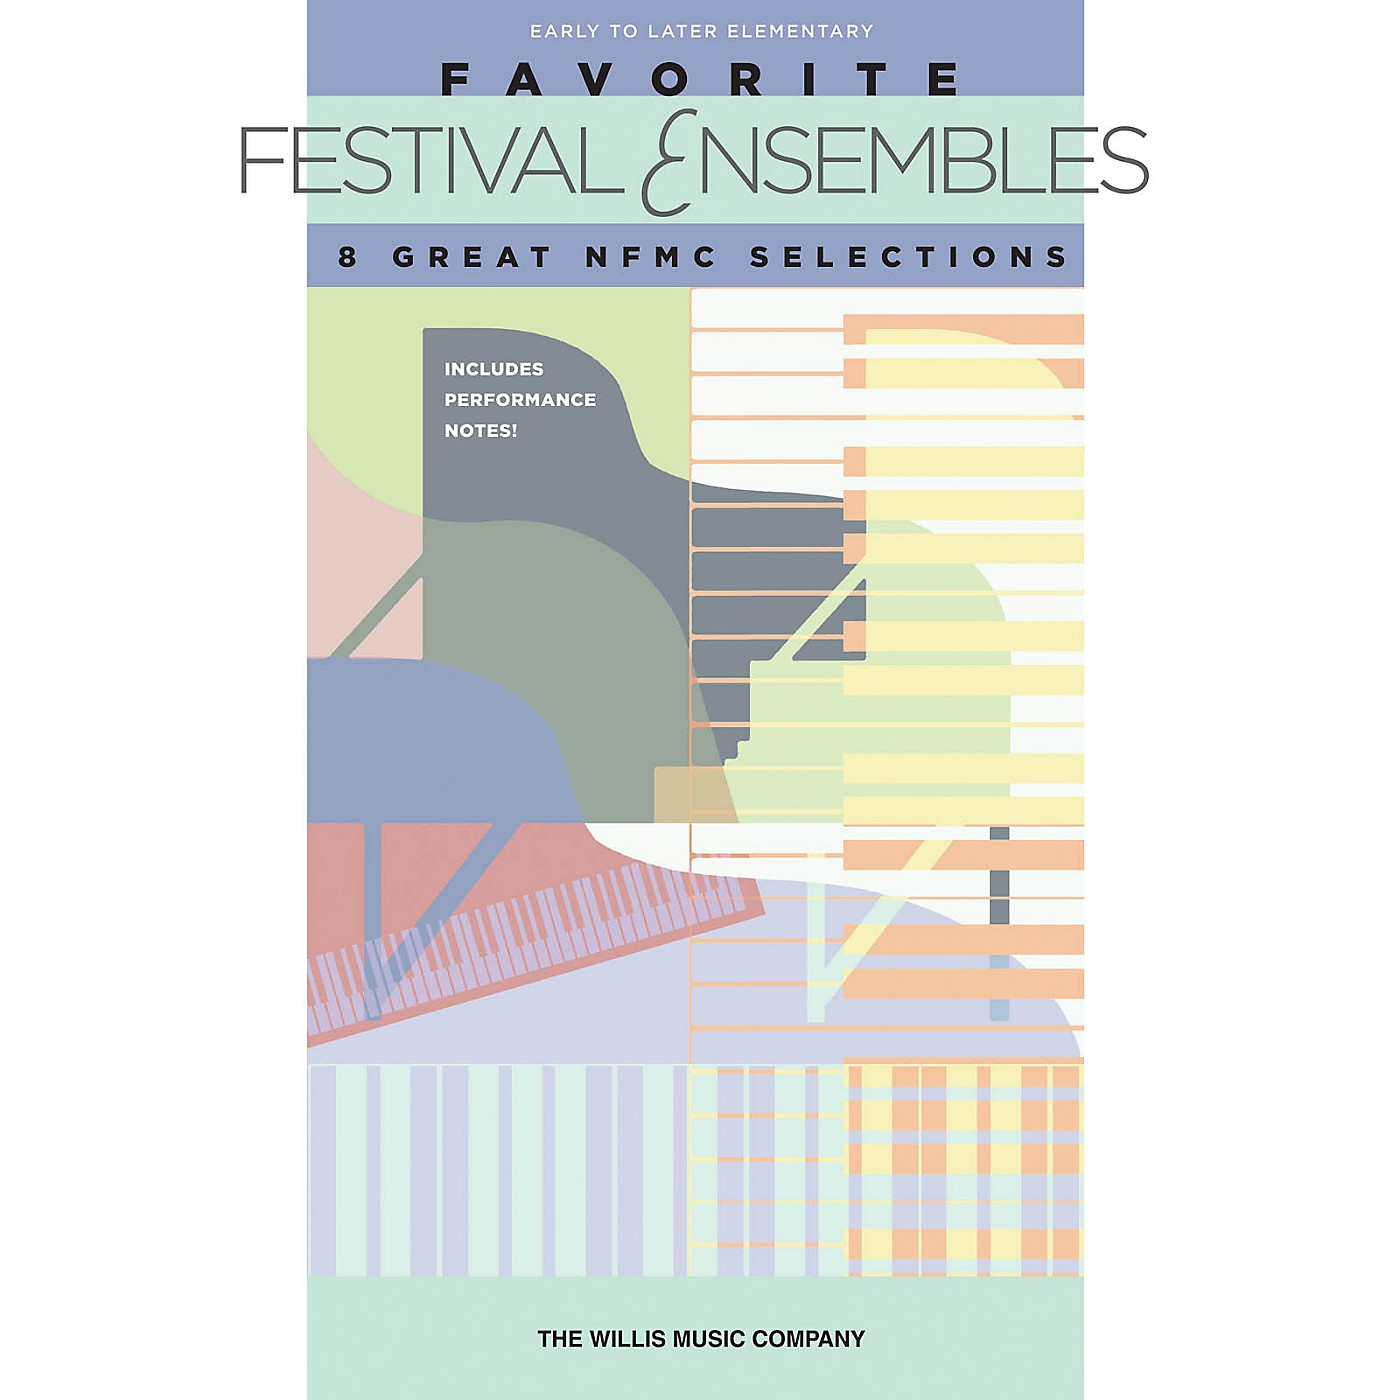 Willis Music Favorite Festival Ensembles - 8 Great NFMC Selections Willis Series by Various (Early to Later Elem) thumbnail